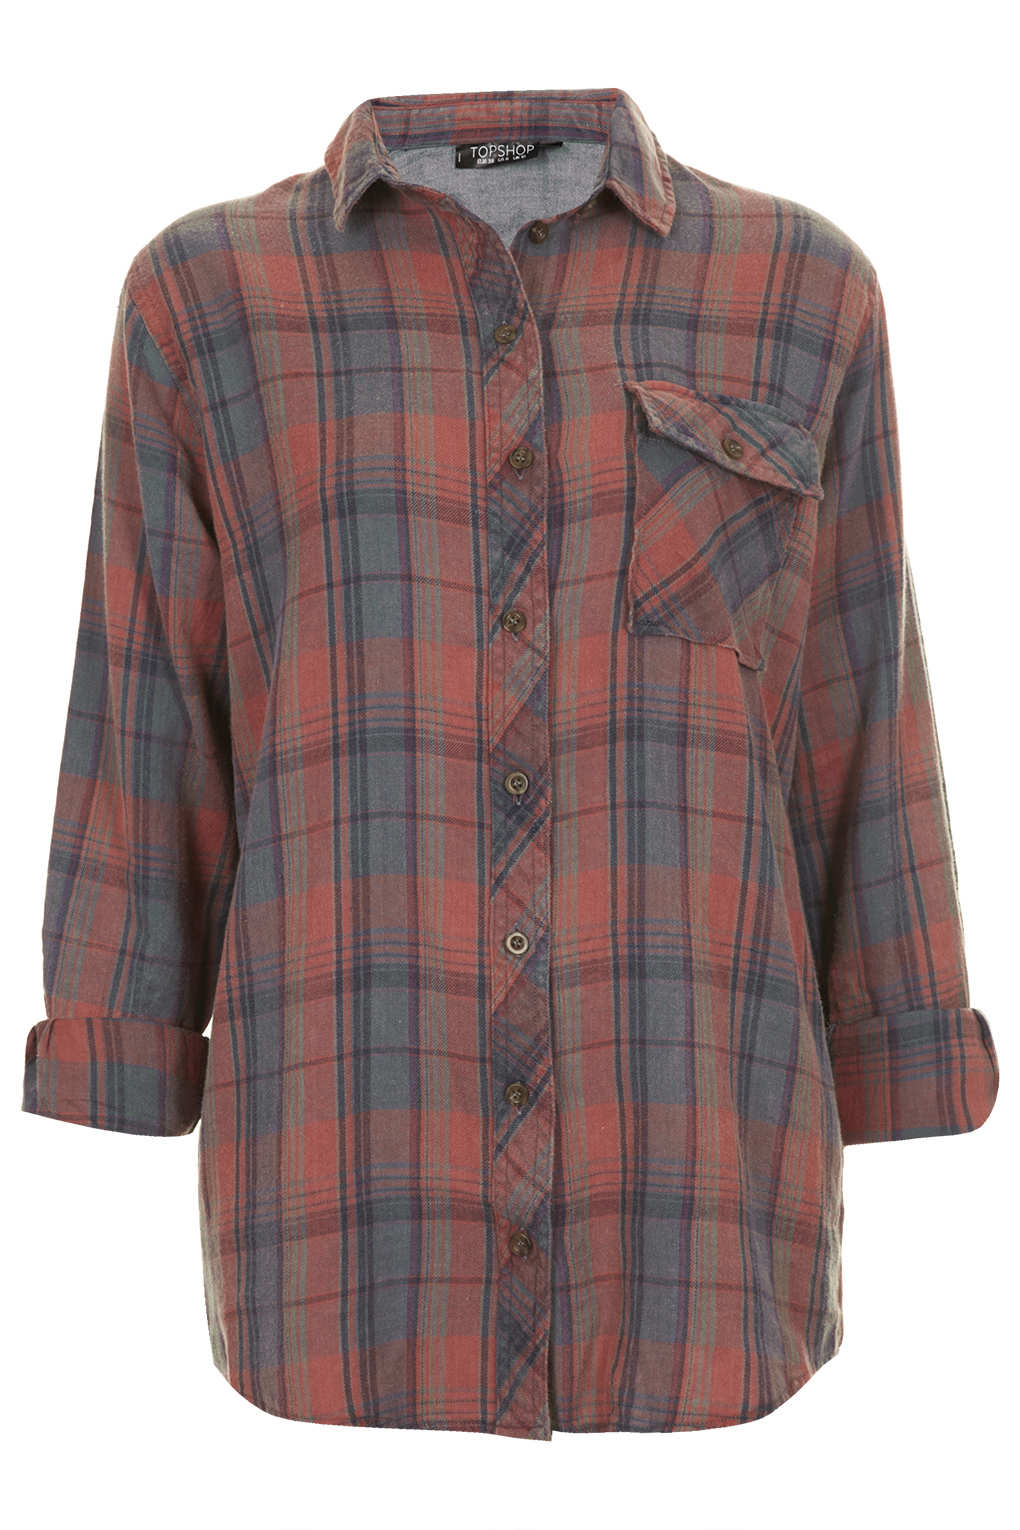 Topshop Oversized Check Shirt Lyst